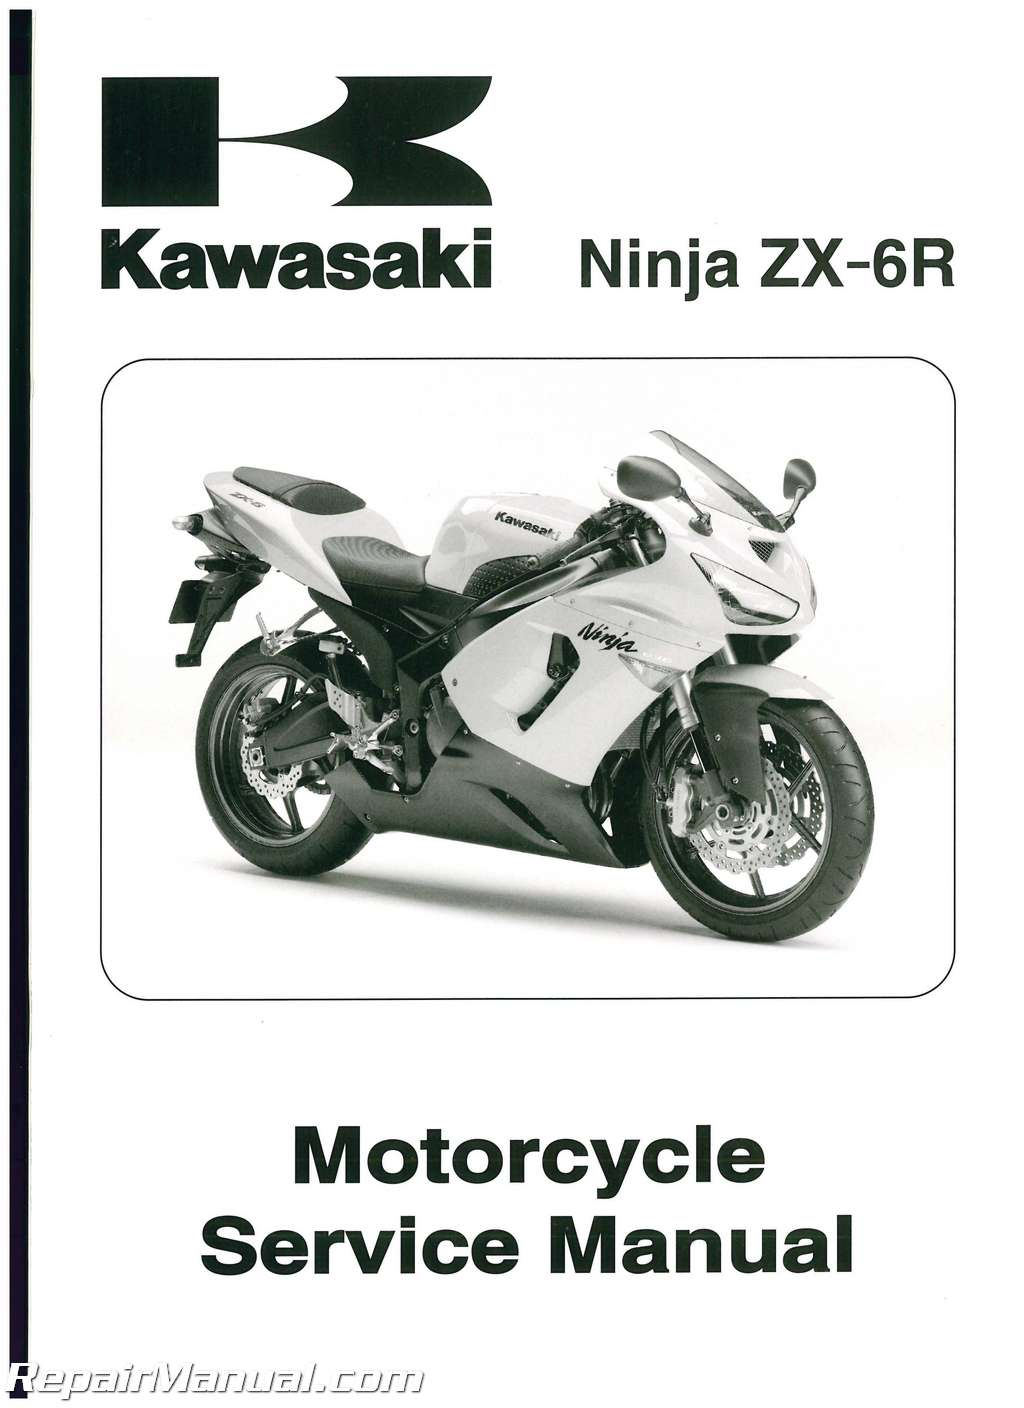 kawasaki zx6r motorcycle service manual 2005 2006 rh repairmanual com zx6r  manual 2009 zx6r manual 2000